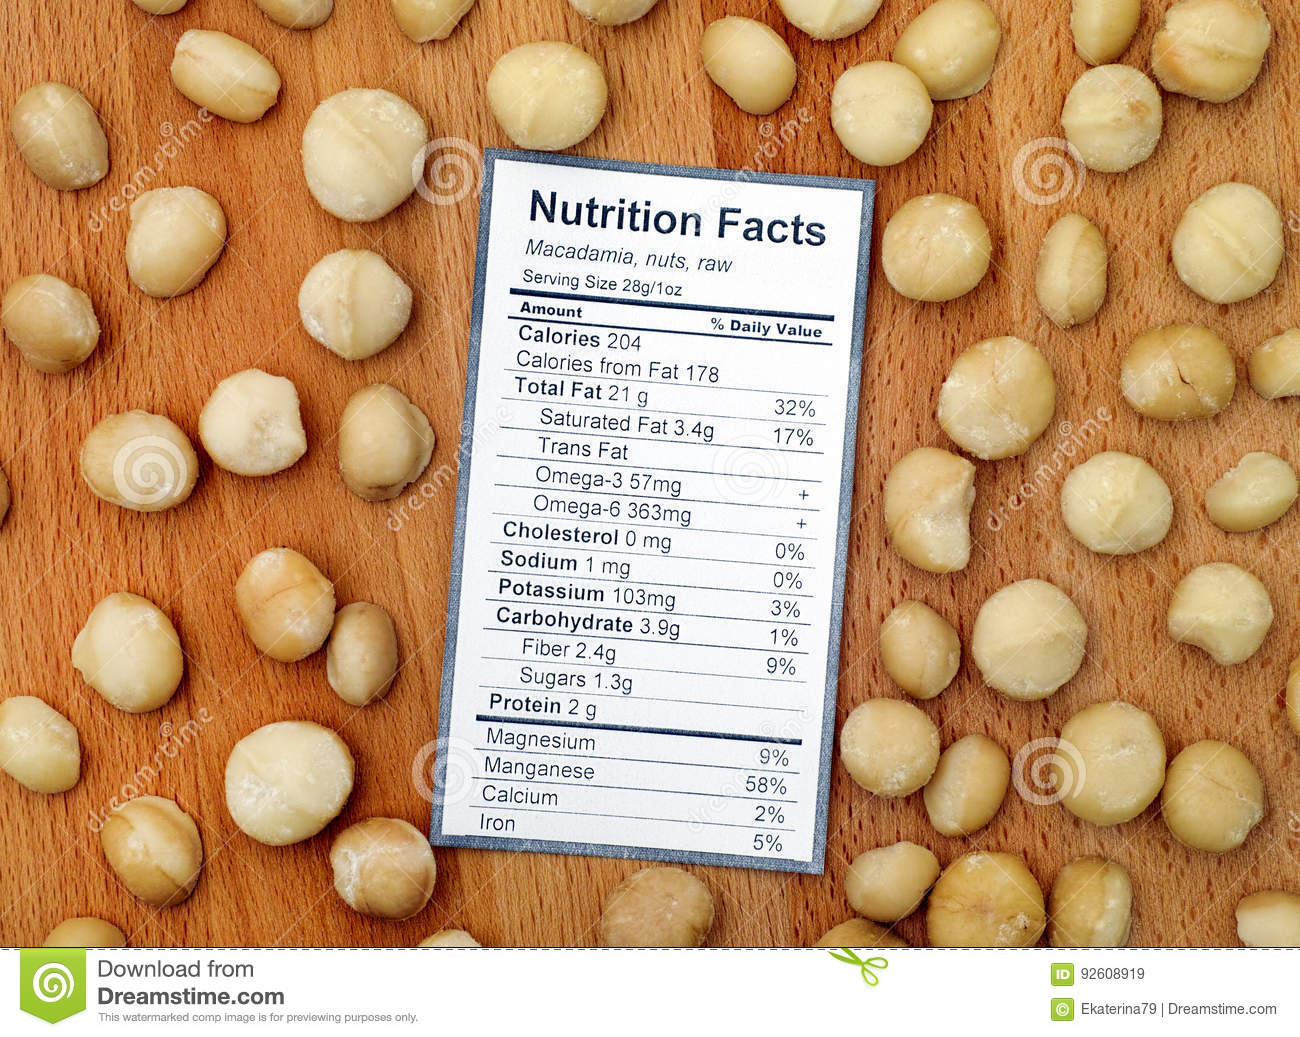 How Many Calories In A Chocolate Brazil Nut